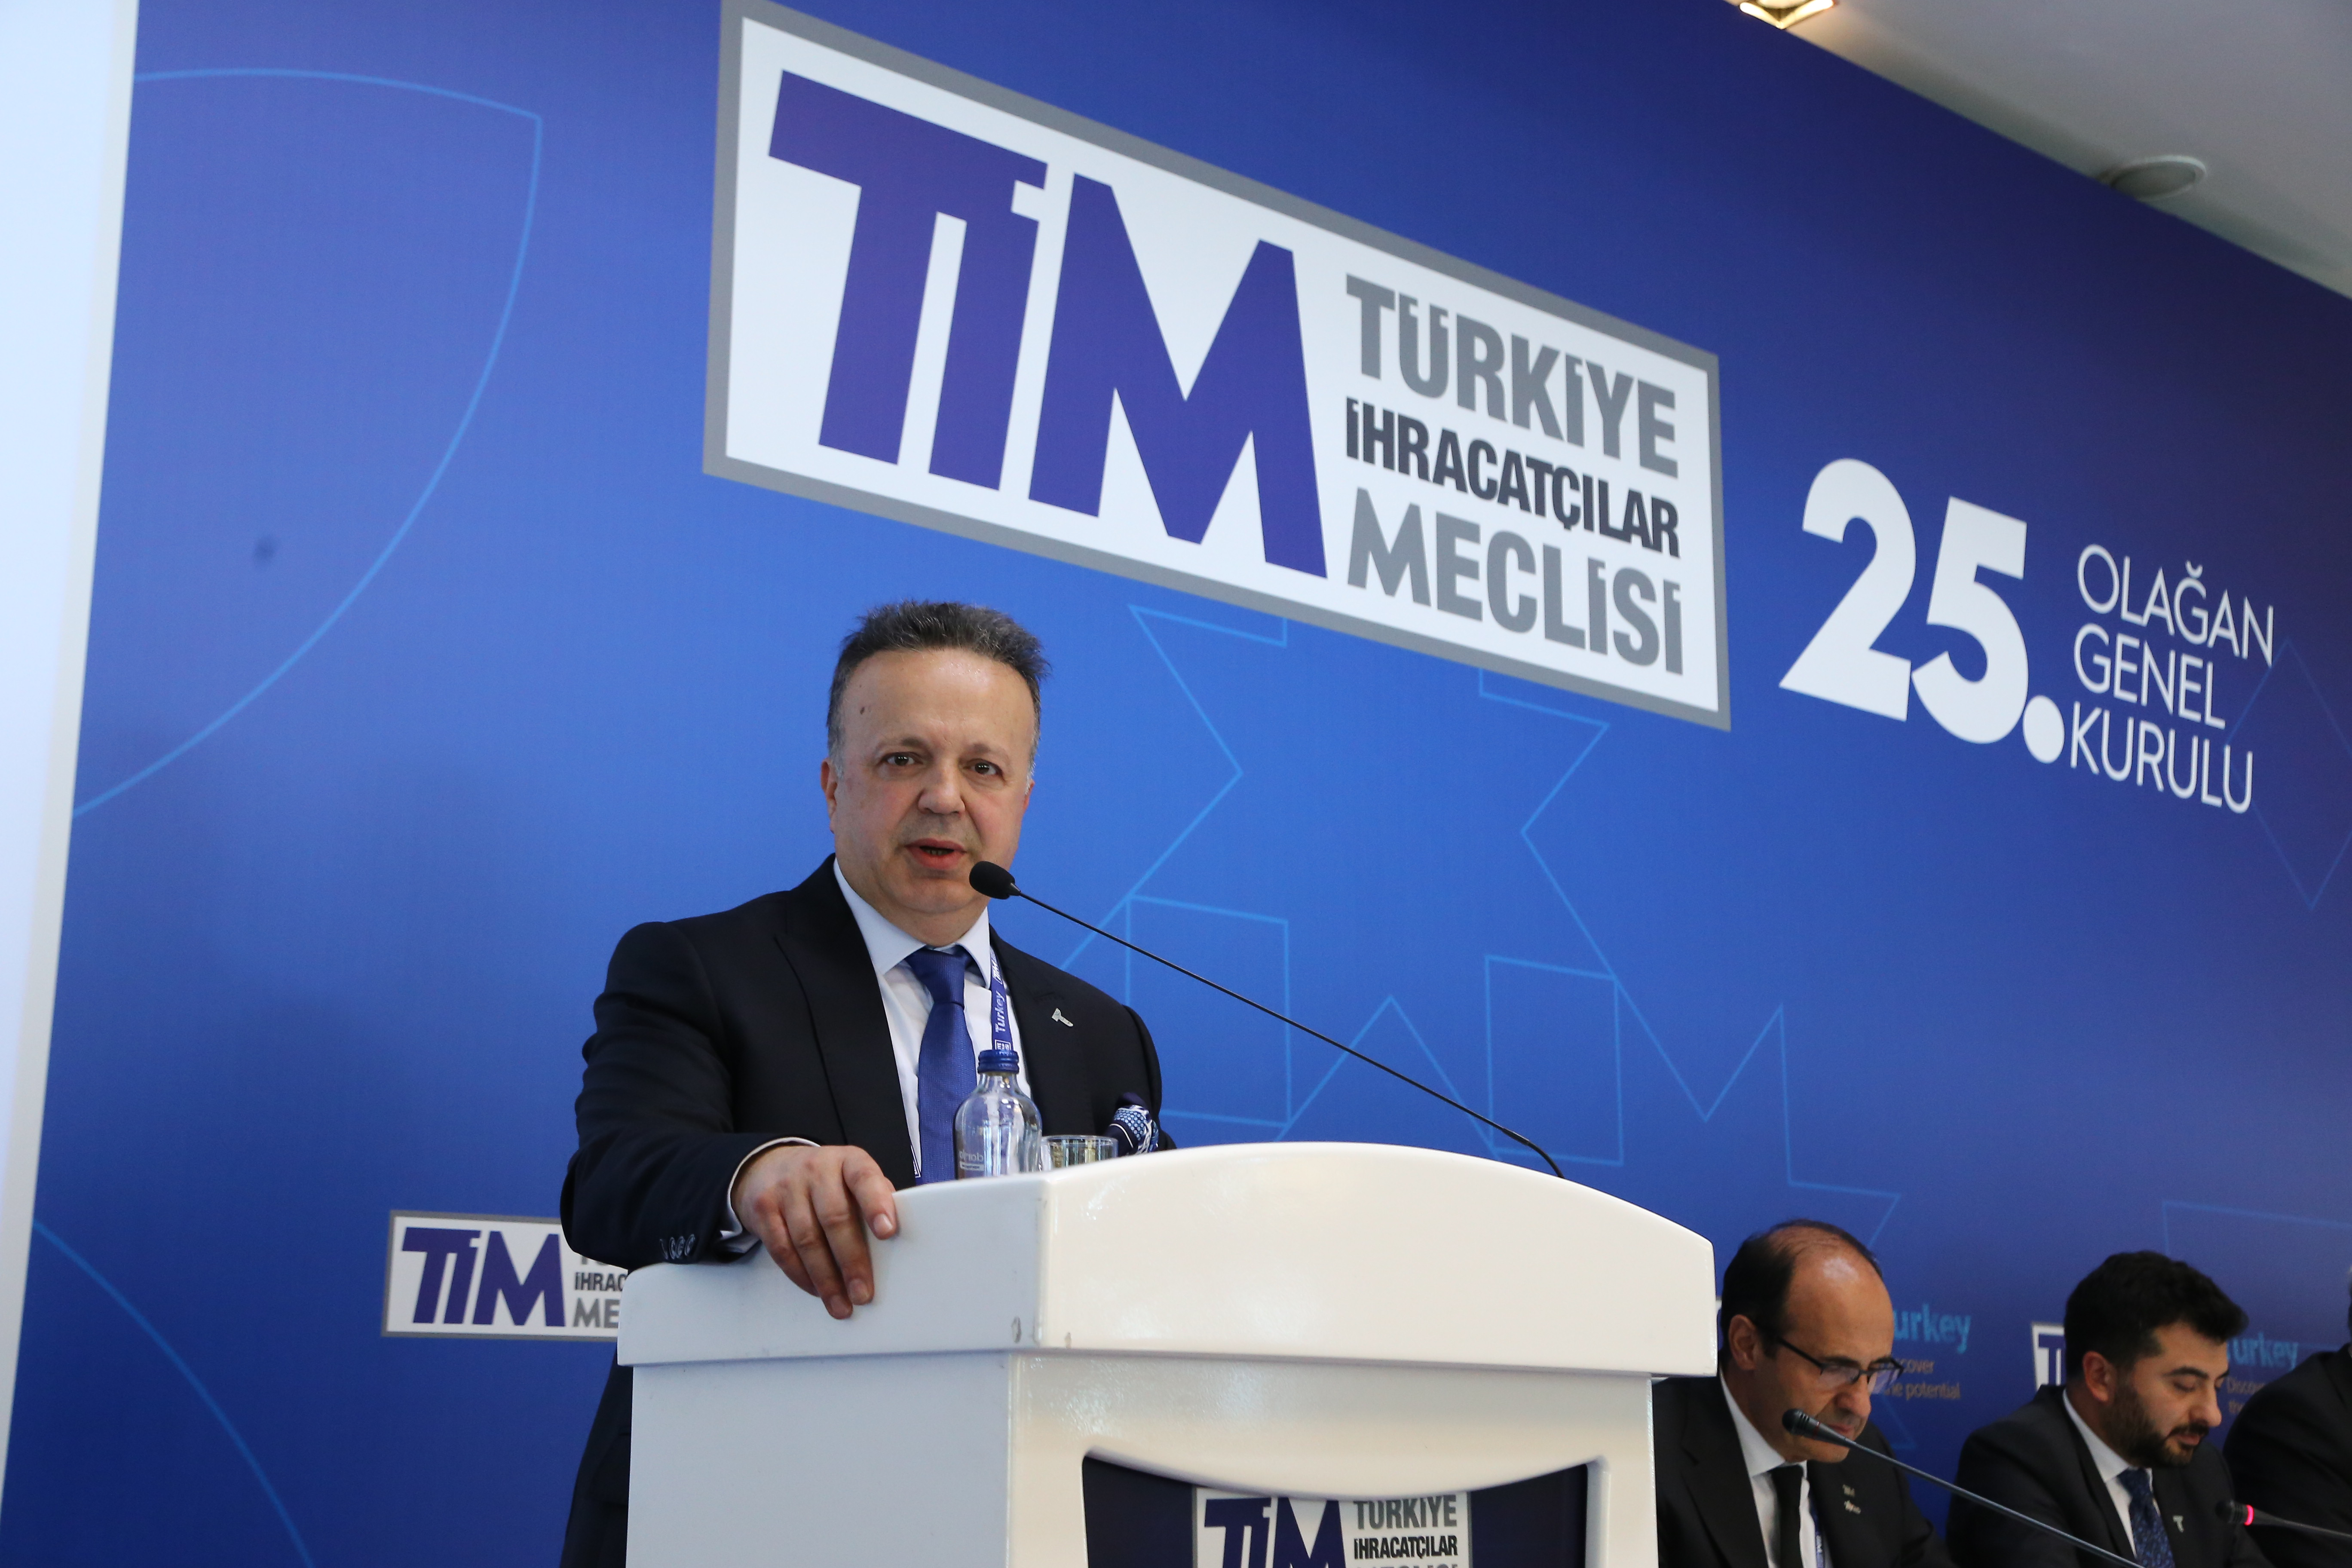 THE NEW CHAIRMAN OF EXPORTERS IS İSMAİL GÜLLE